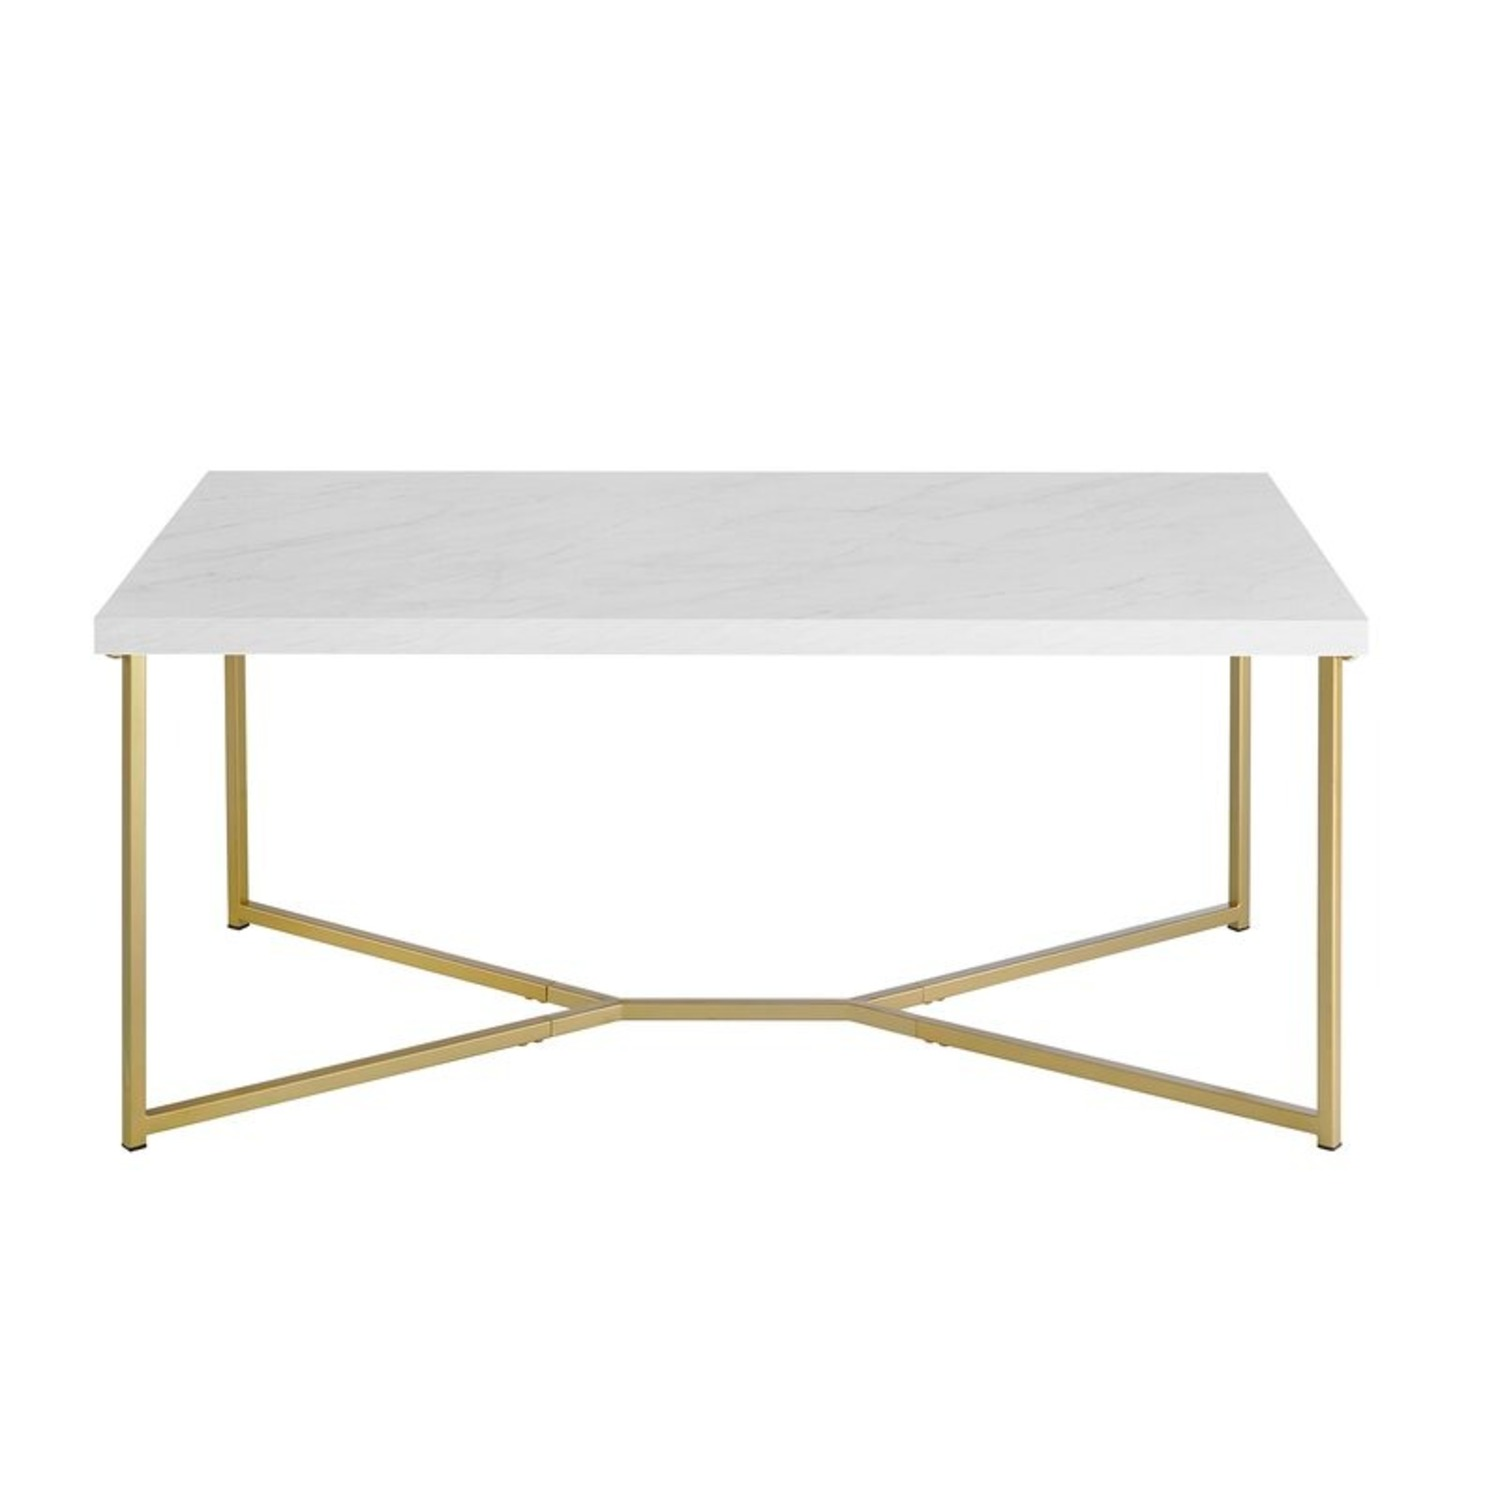 Wayfair Faux White Marble Coffee Table - image-2